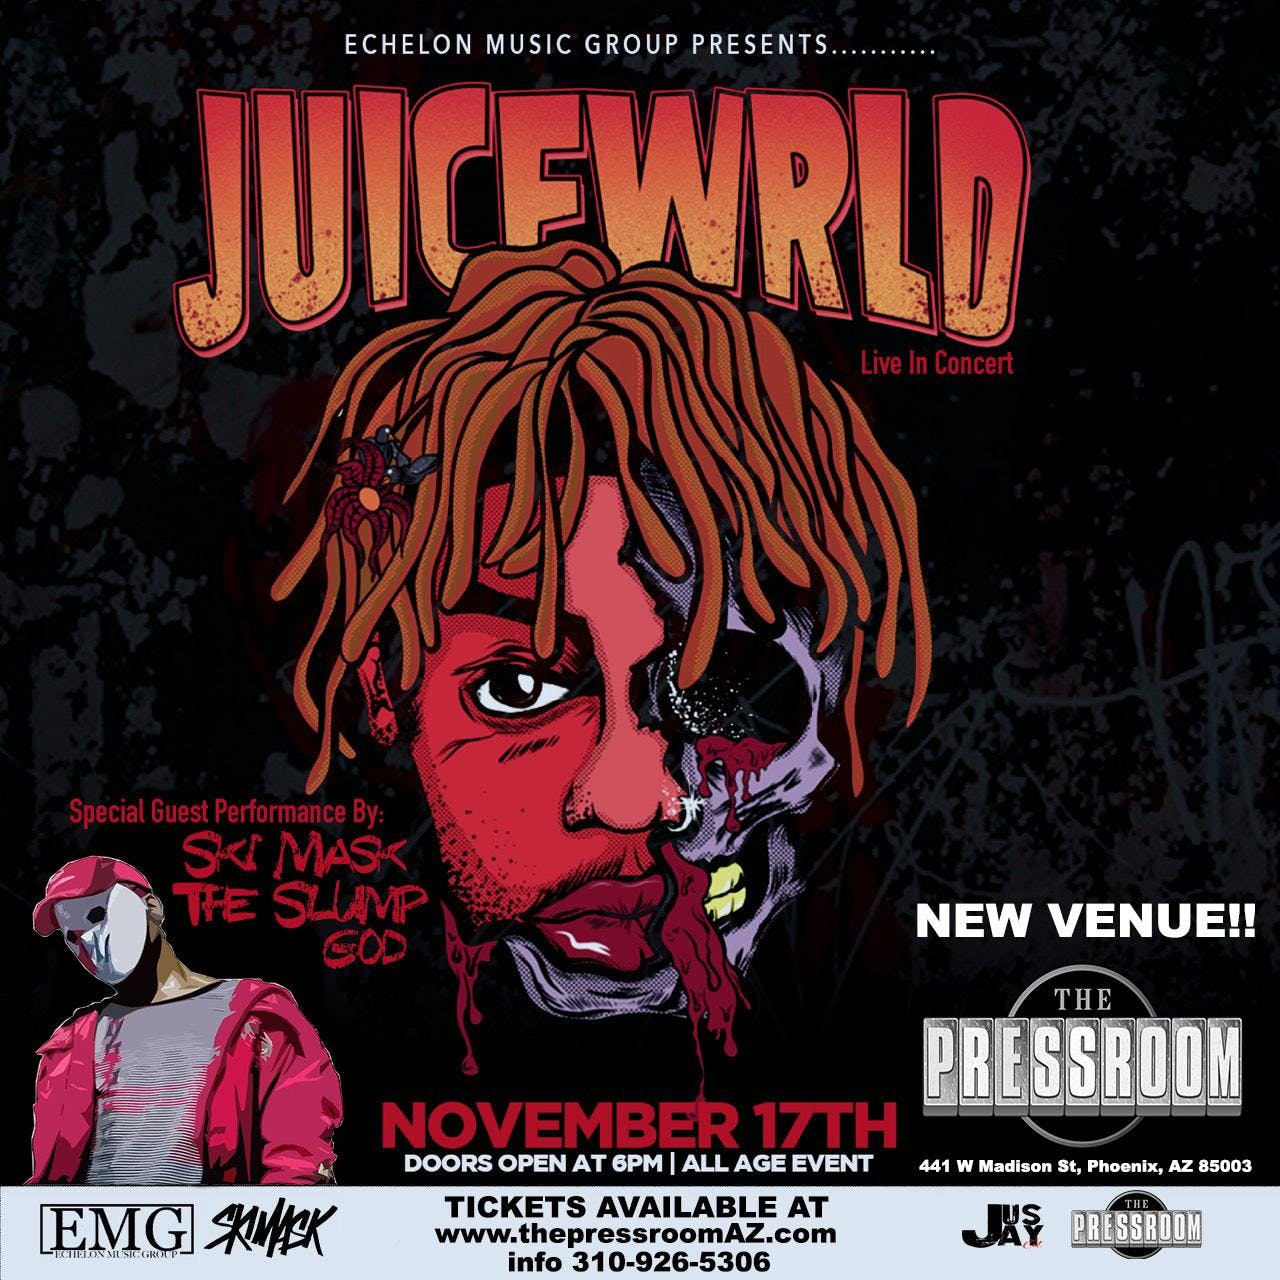 JUICE WRLD w/ SKI MASK THE SLUMP GOD @ The Pressroom